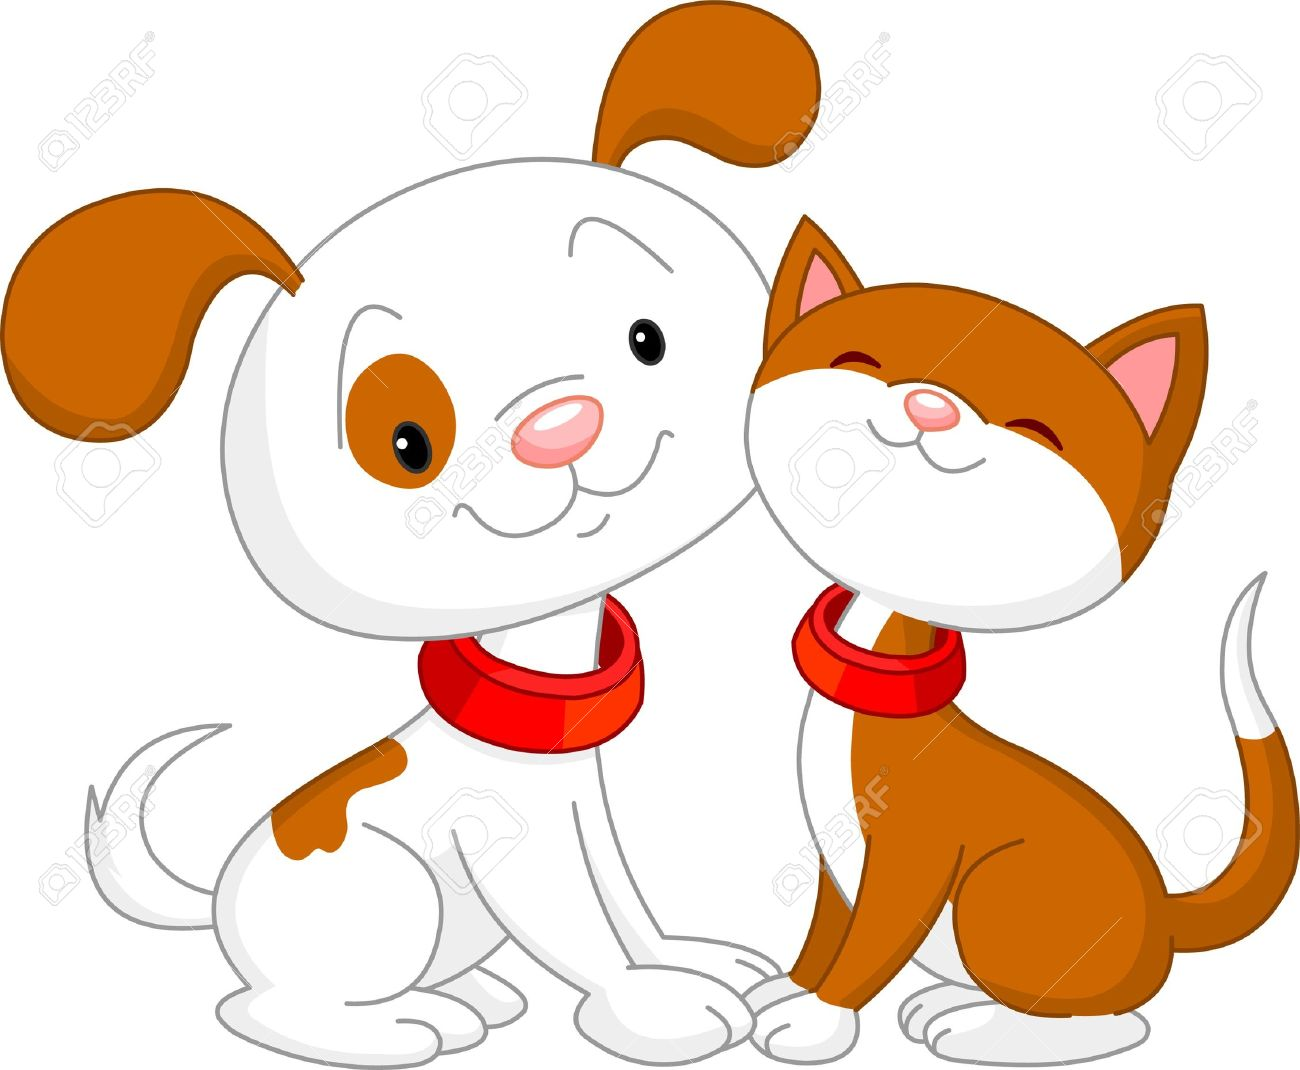 Free cartoon dog and cat clipart.